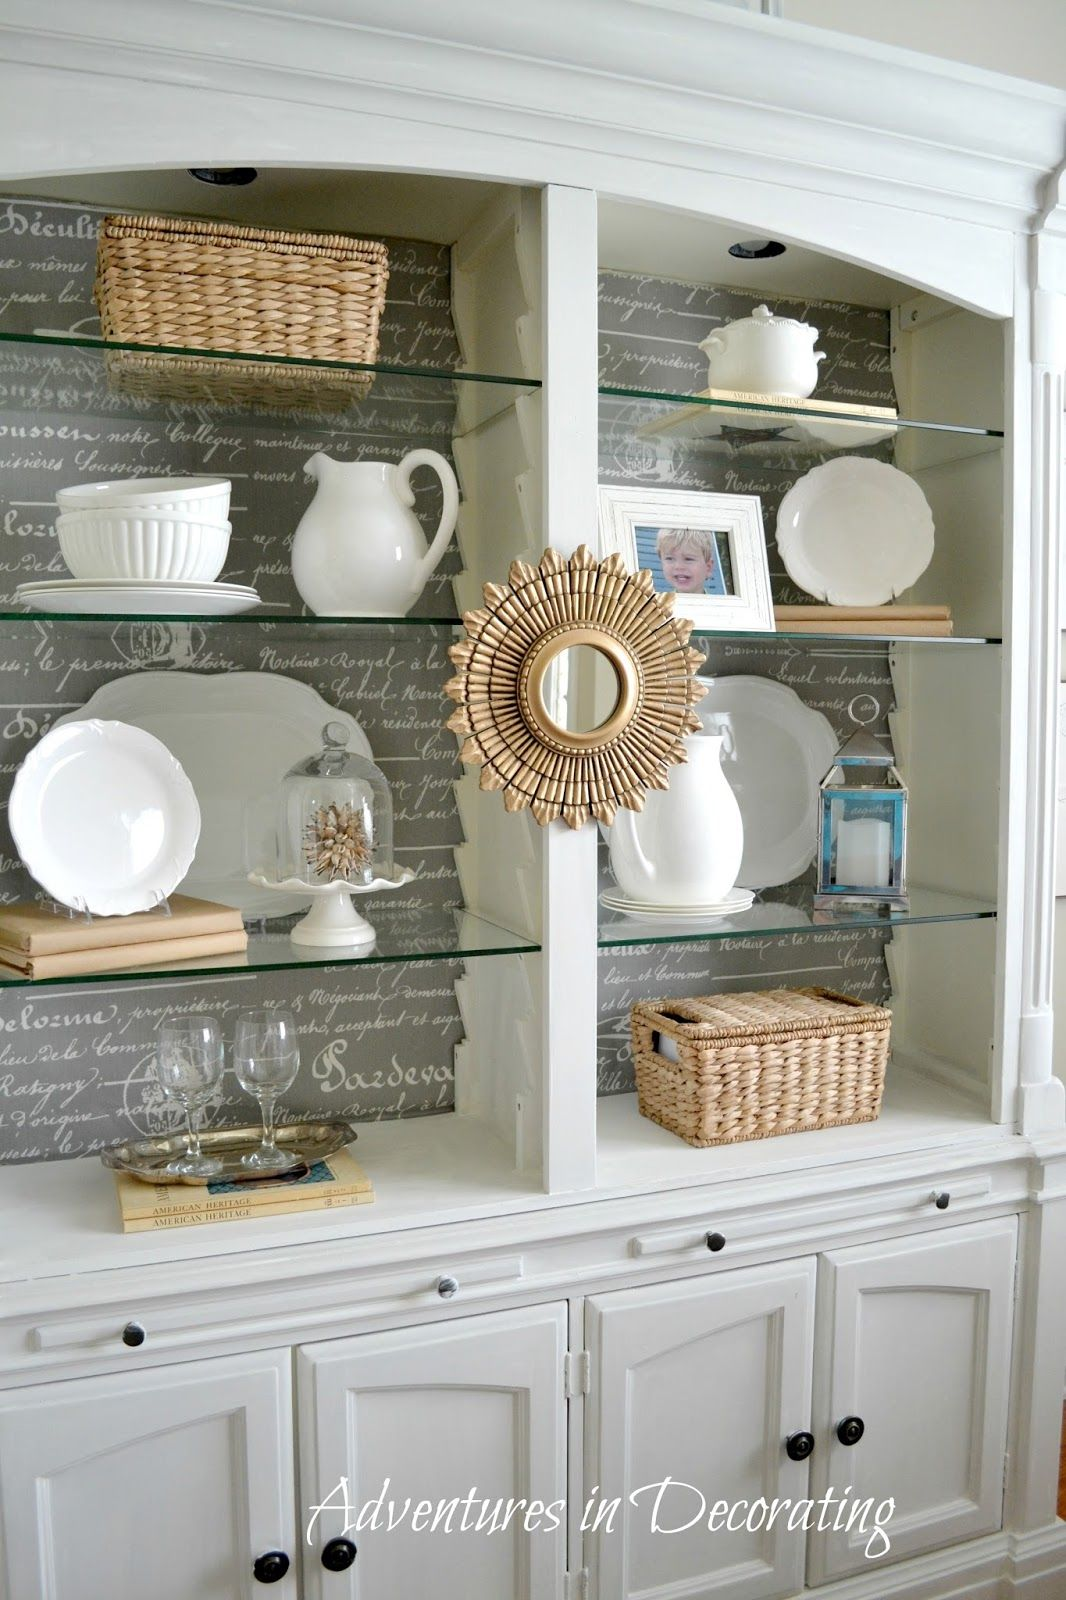 Pin By Memra Surles On Home Decor Details Dining Room Shelves Dining Room Storage Stylish Dining Room